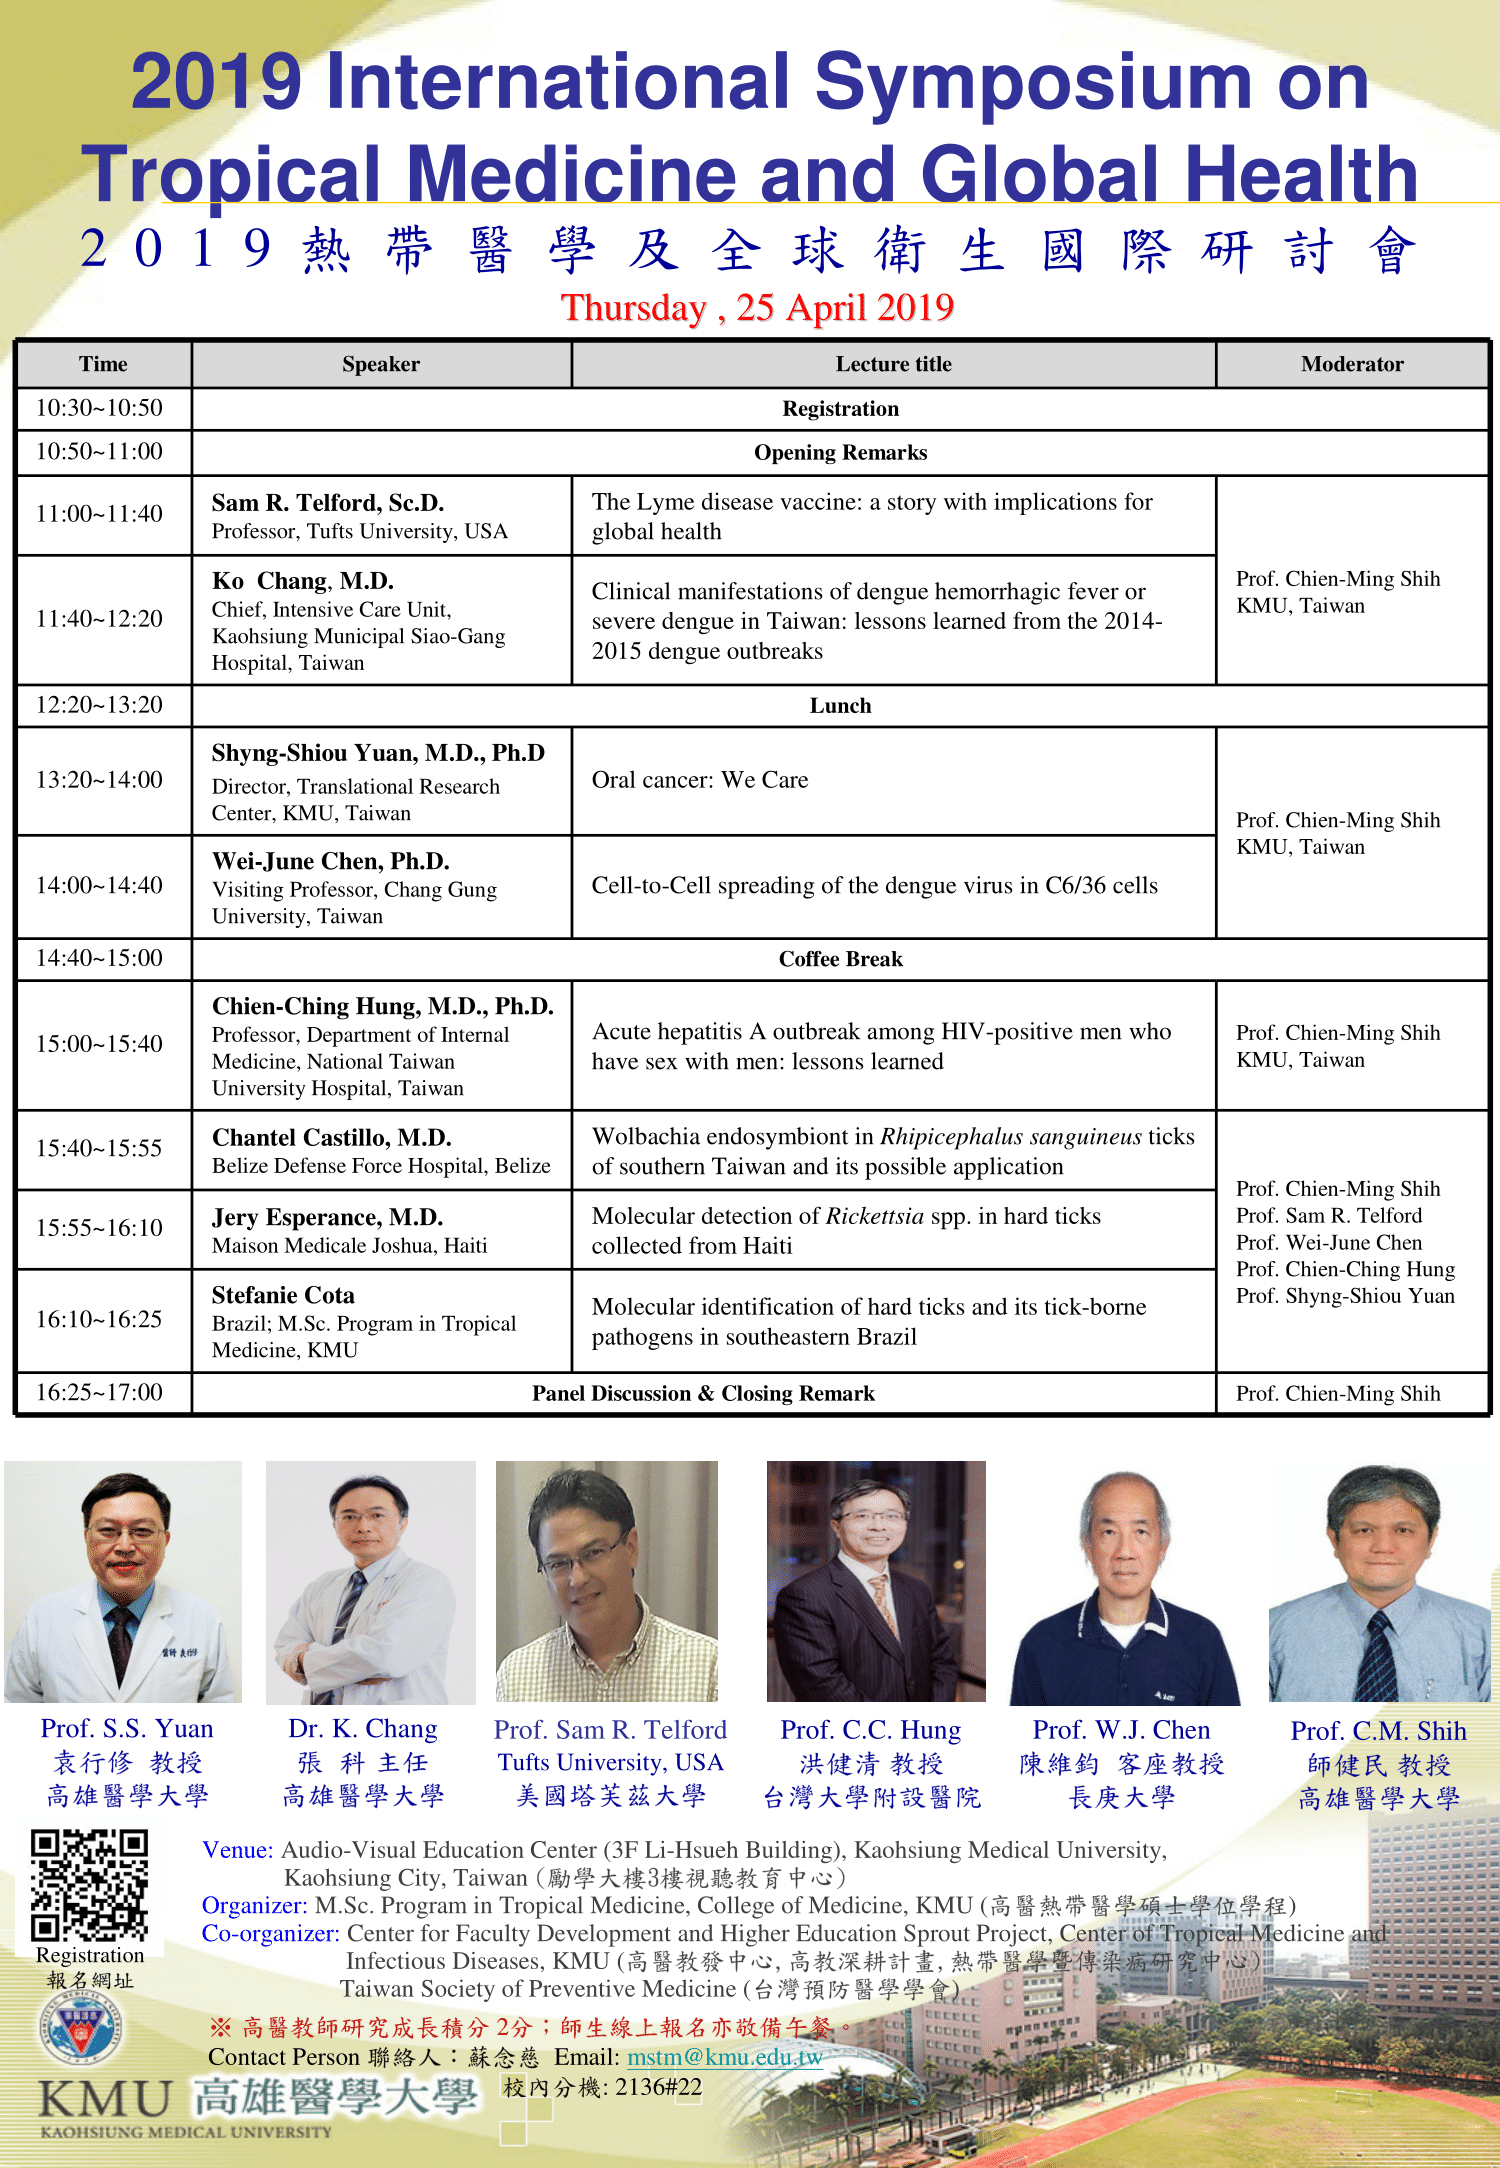 2019 International Symposium on Tropical Medicine and Global Health R2